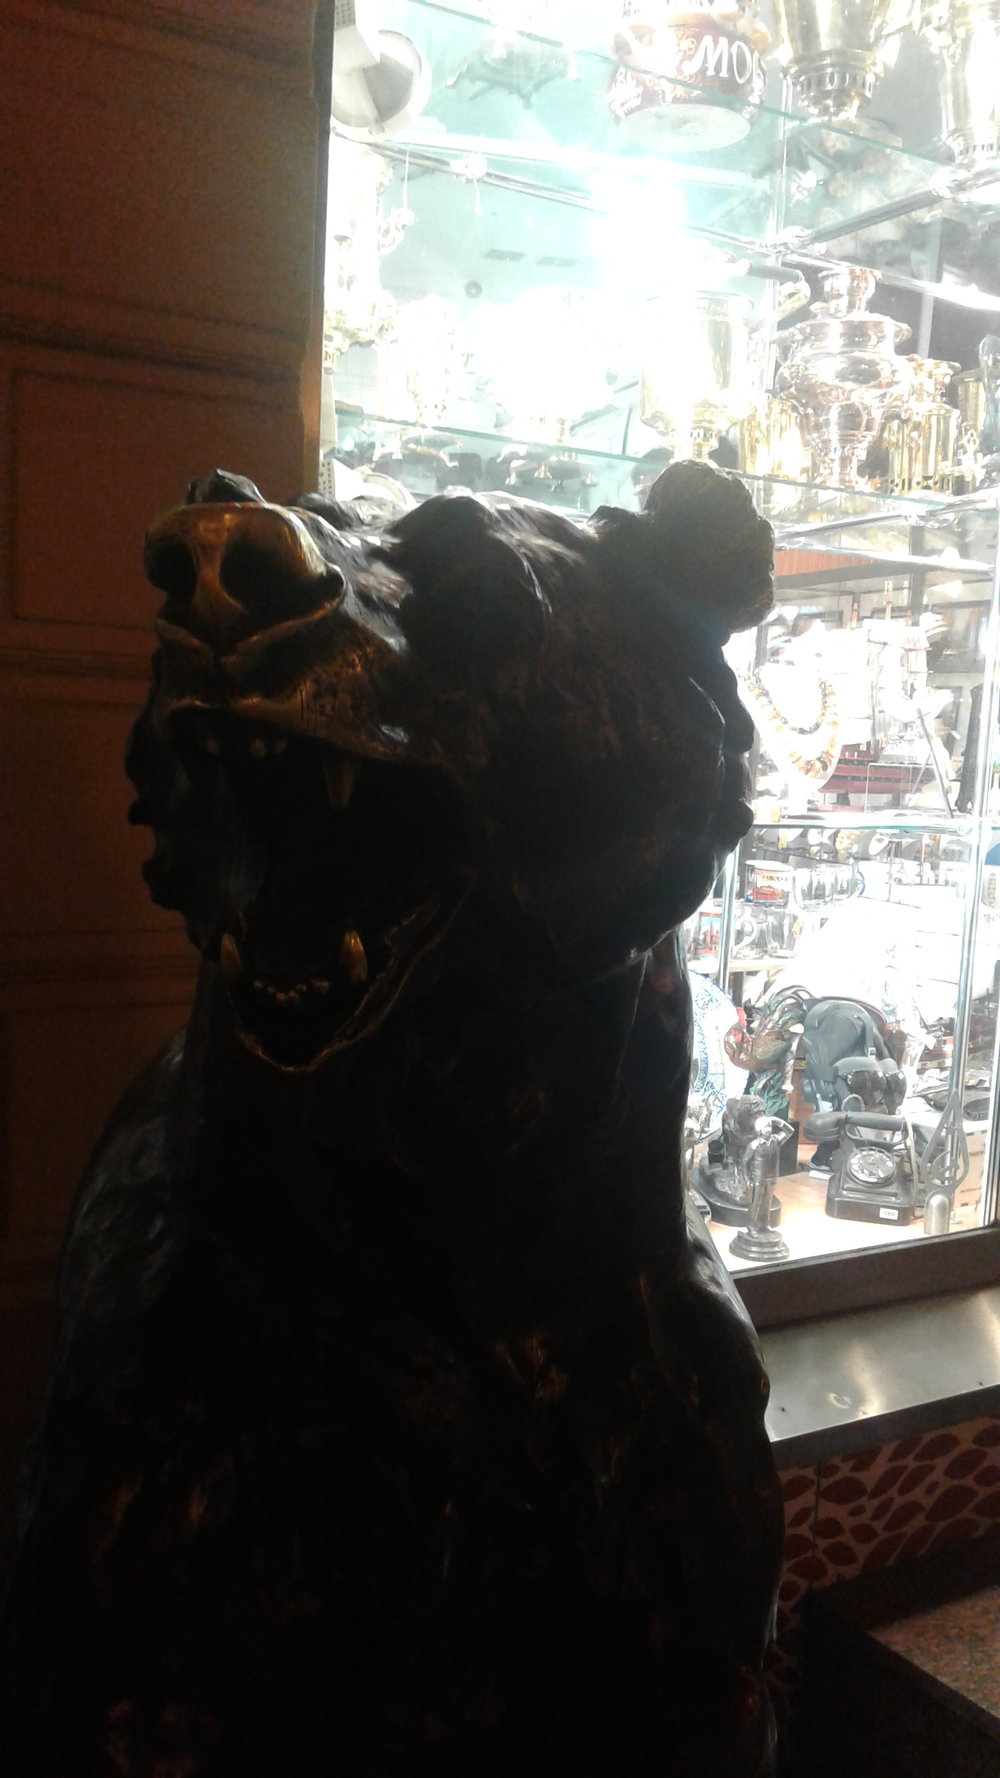 At least three British newspapers would gladly cite this photo as proof that bears have overrun the souvenir shops of downtown Moscow.